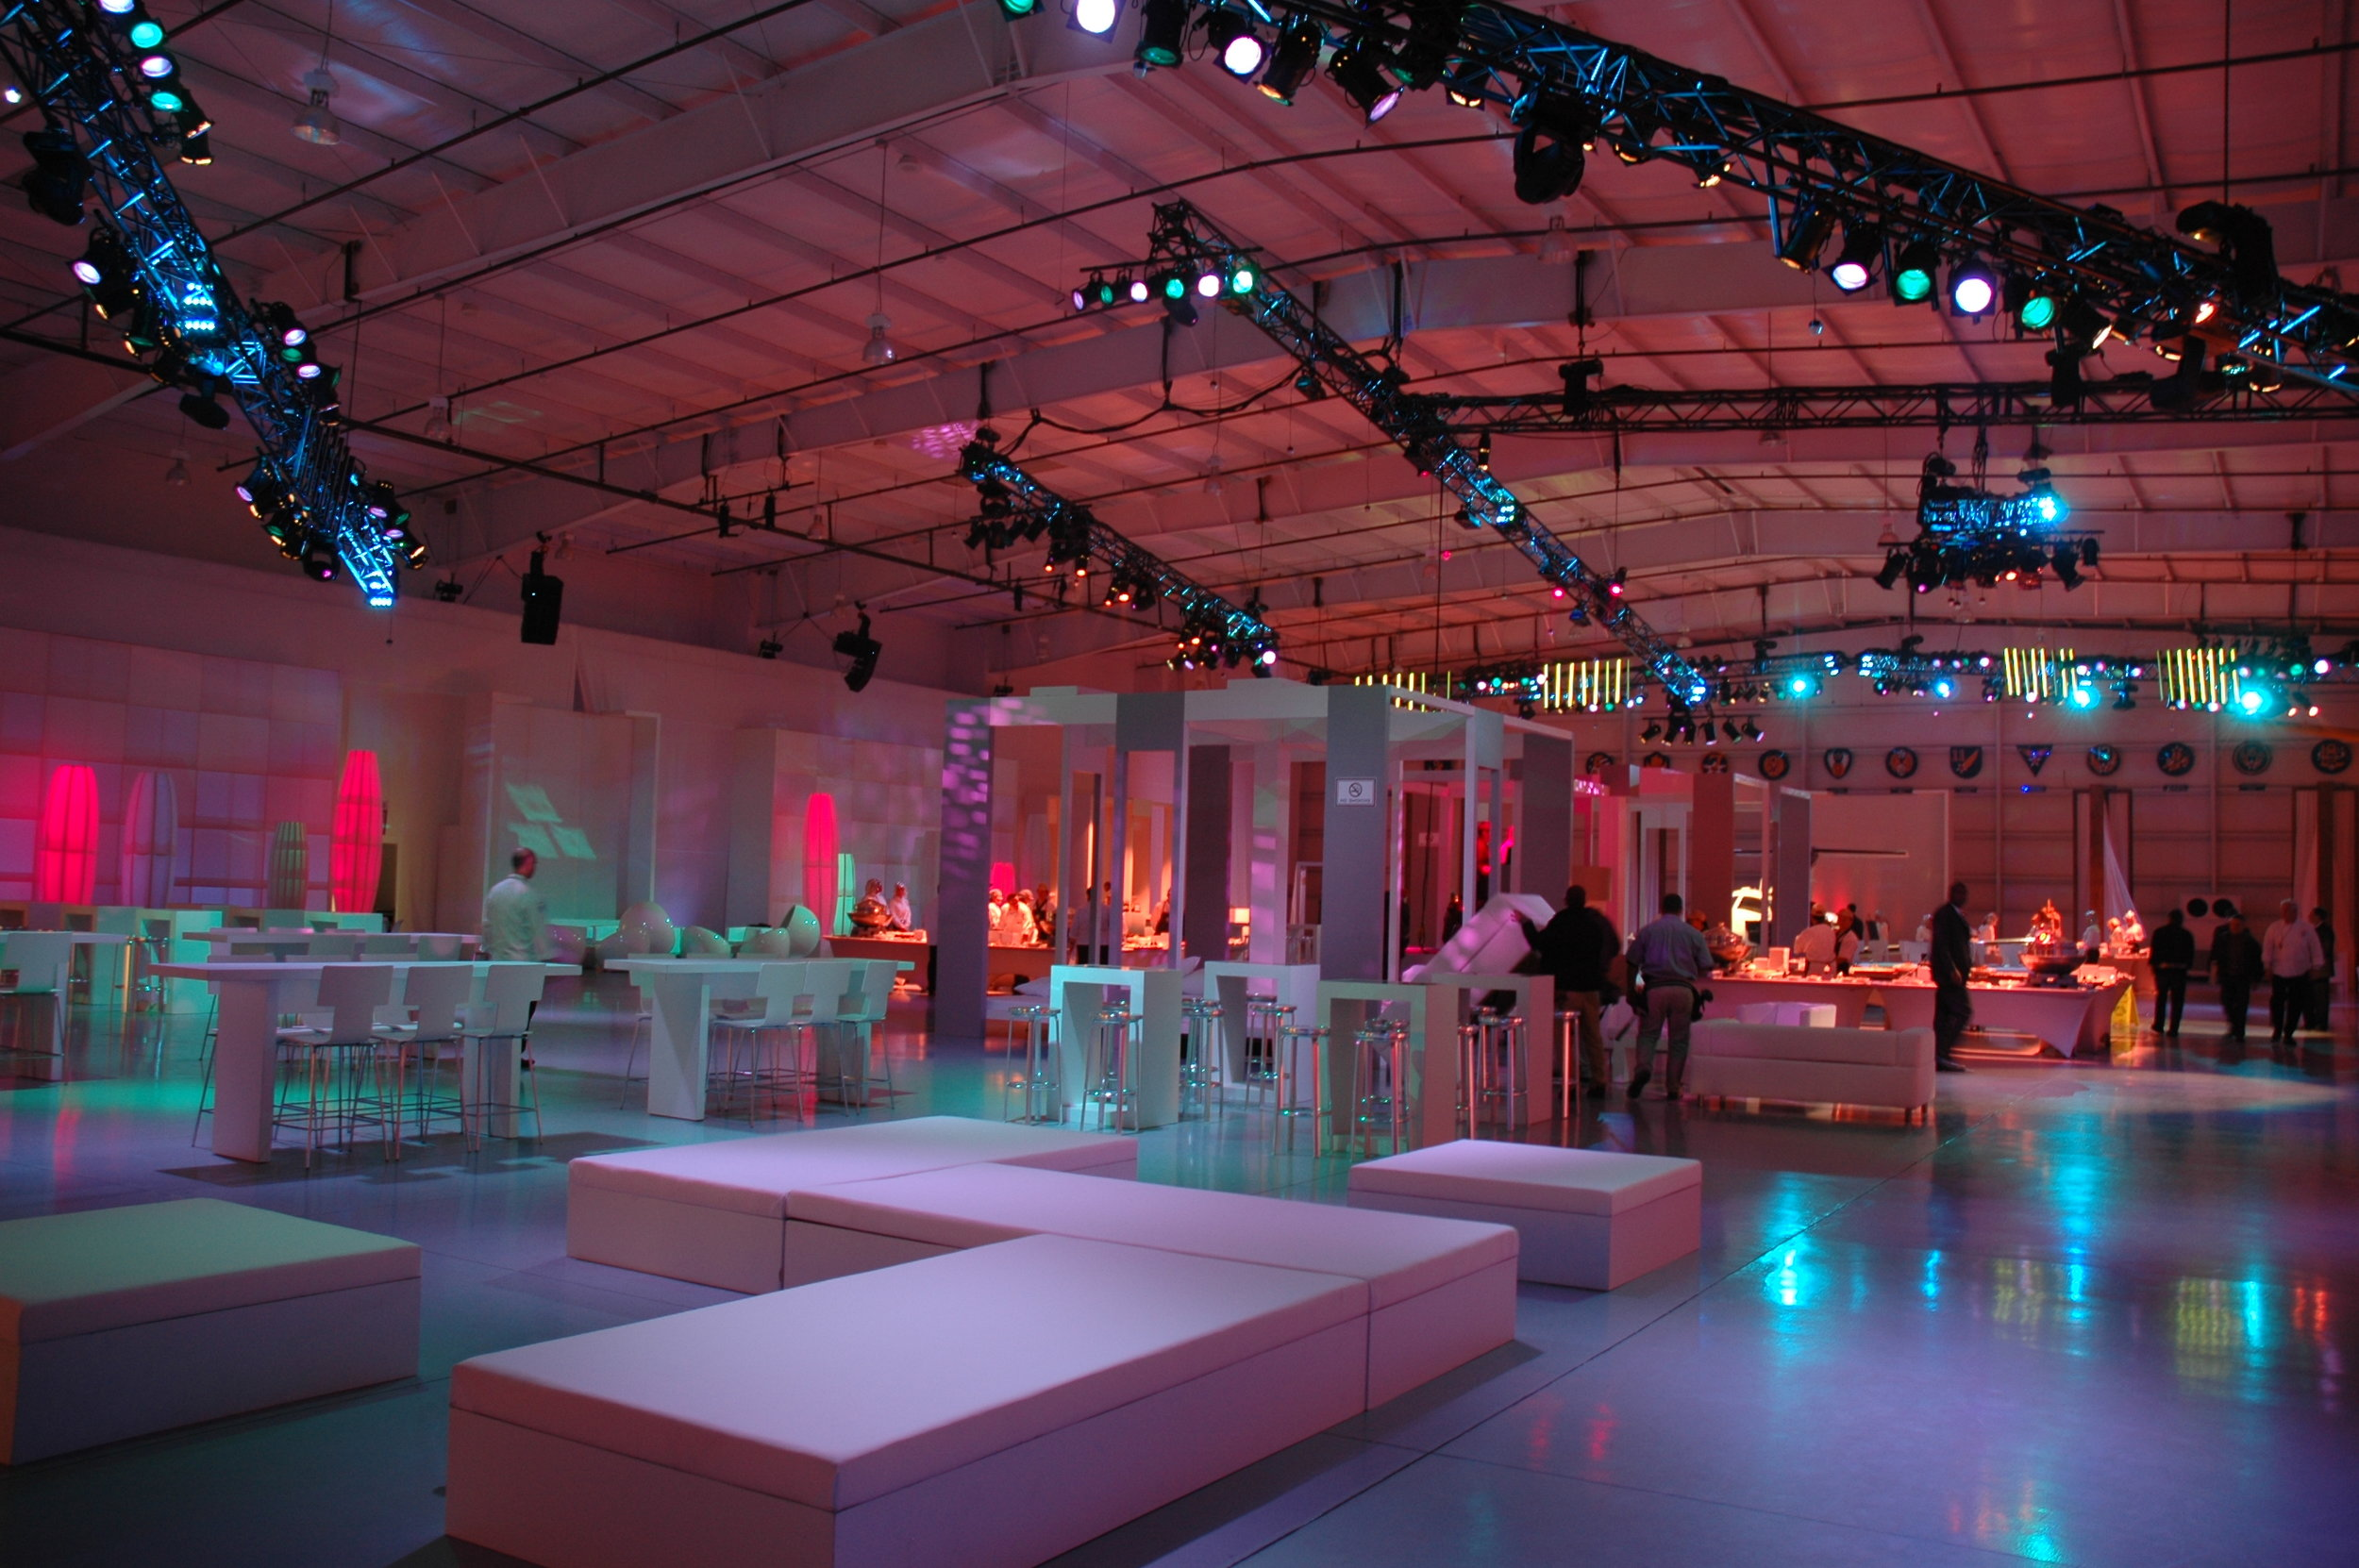 3 phase global interior event lighting